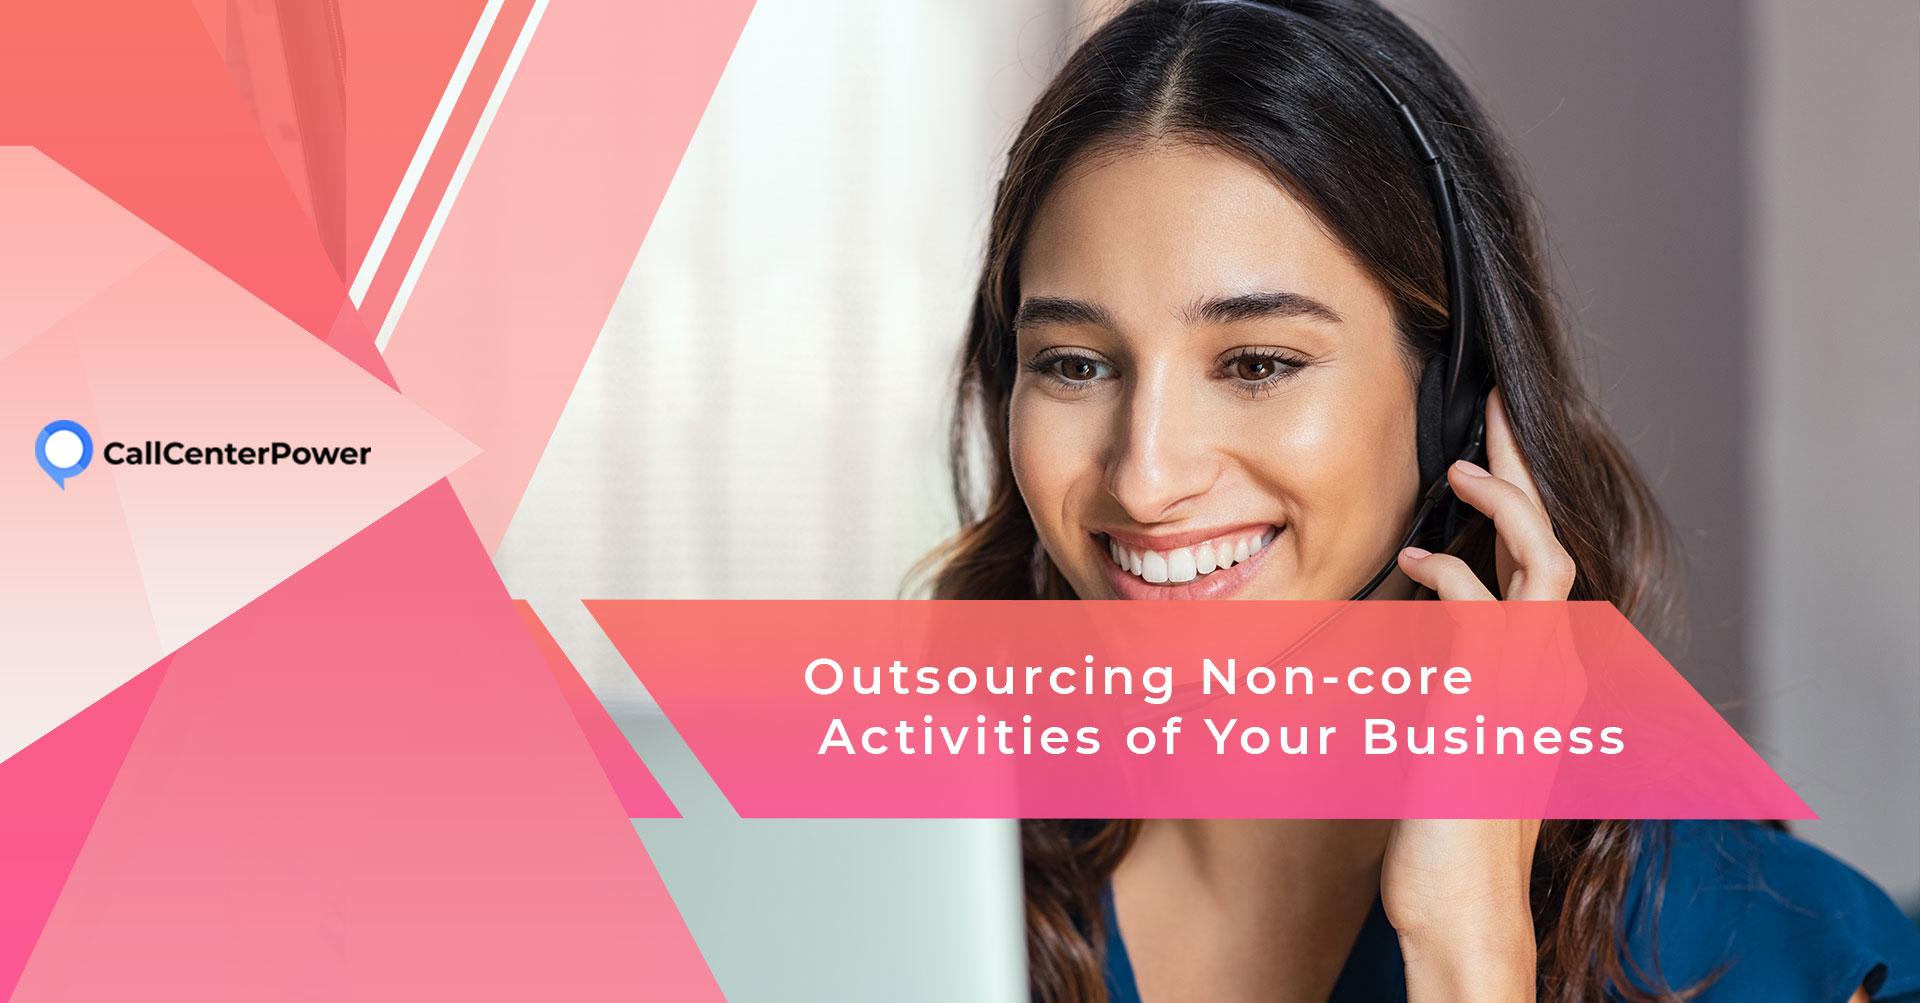 Outsourcing Non-core activities of your business